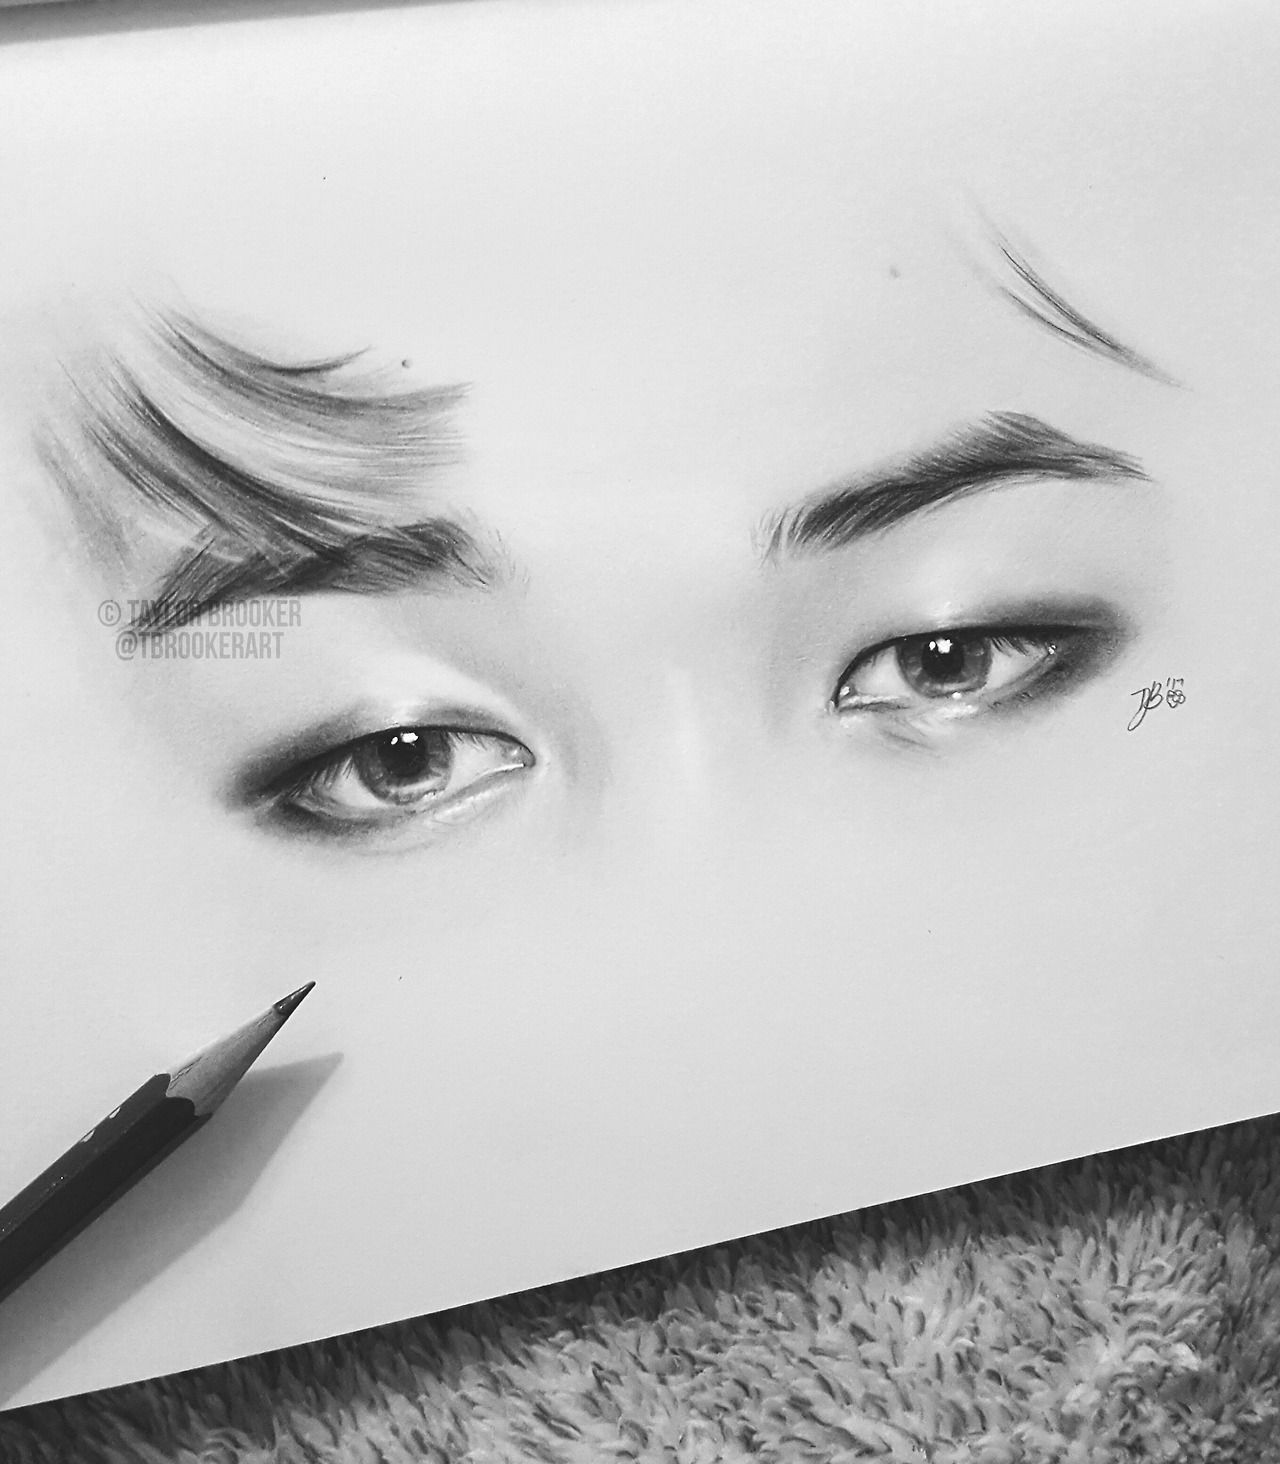 Pin by jan sachi on jimin in 2019 | Bts drawings, Bts eyes ...